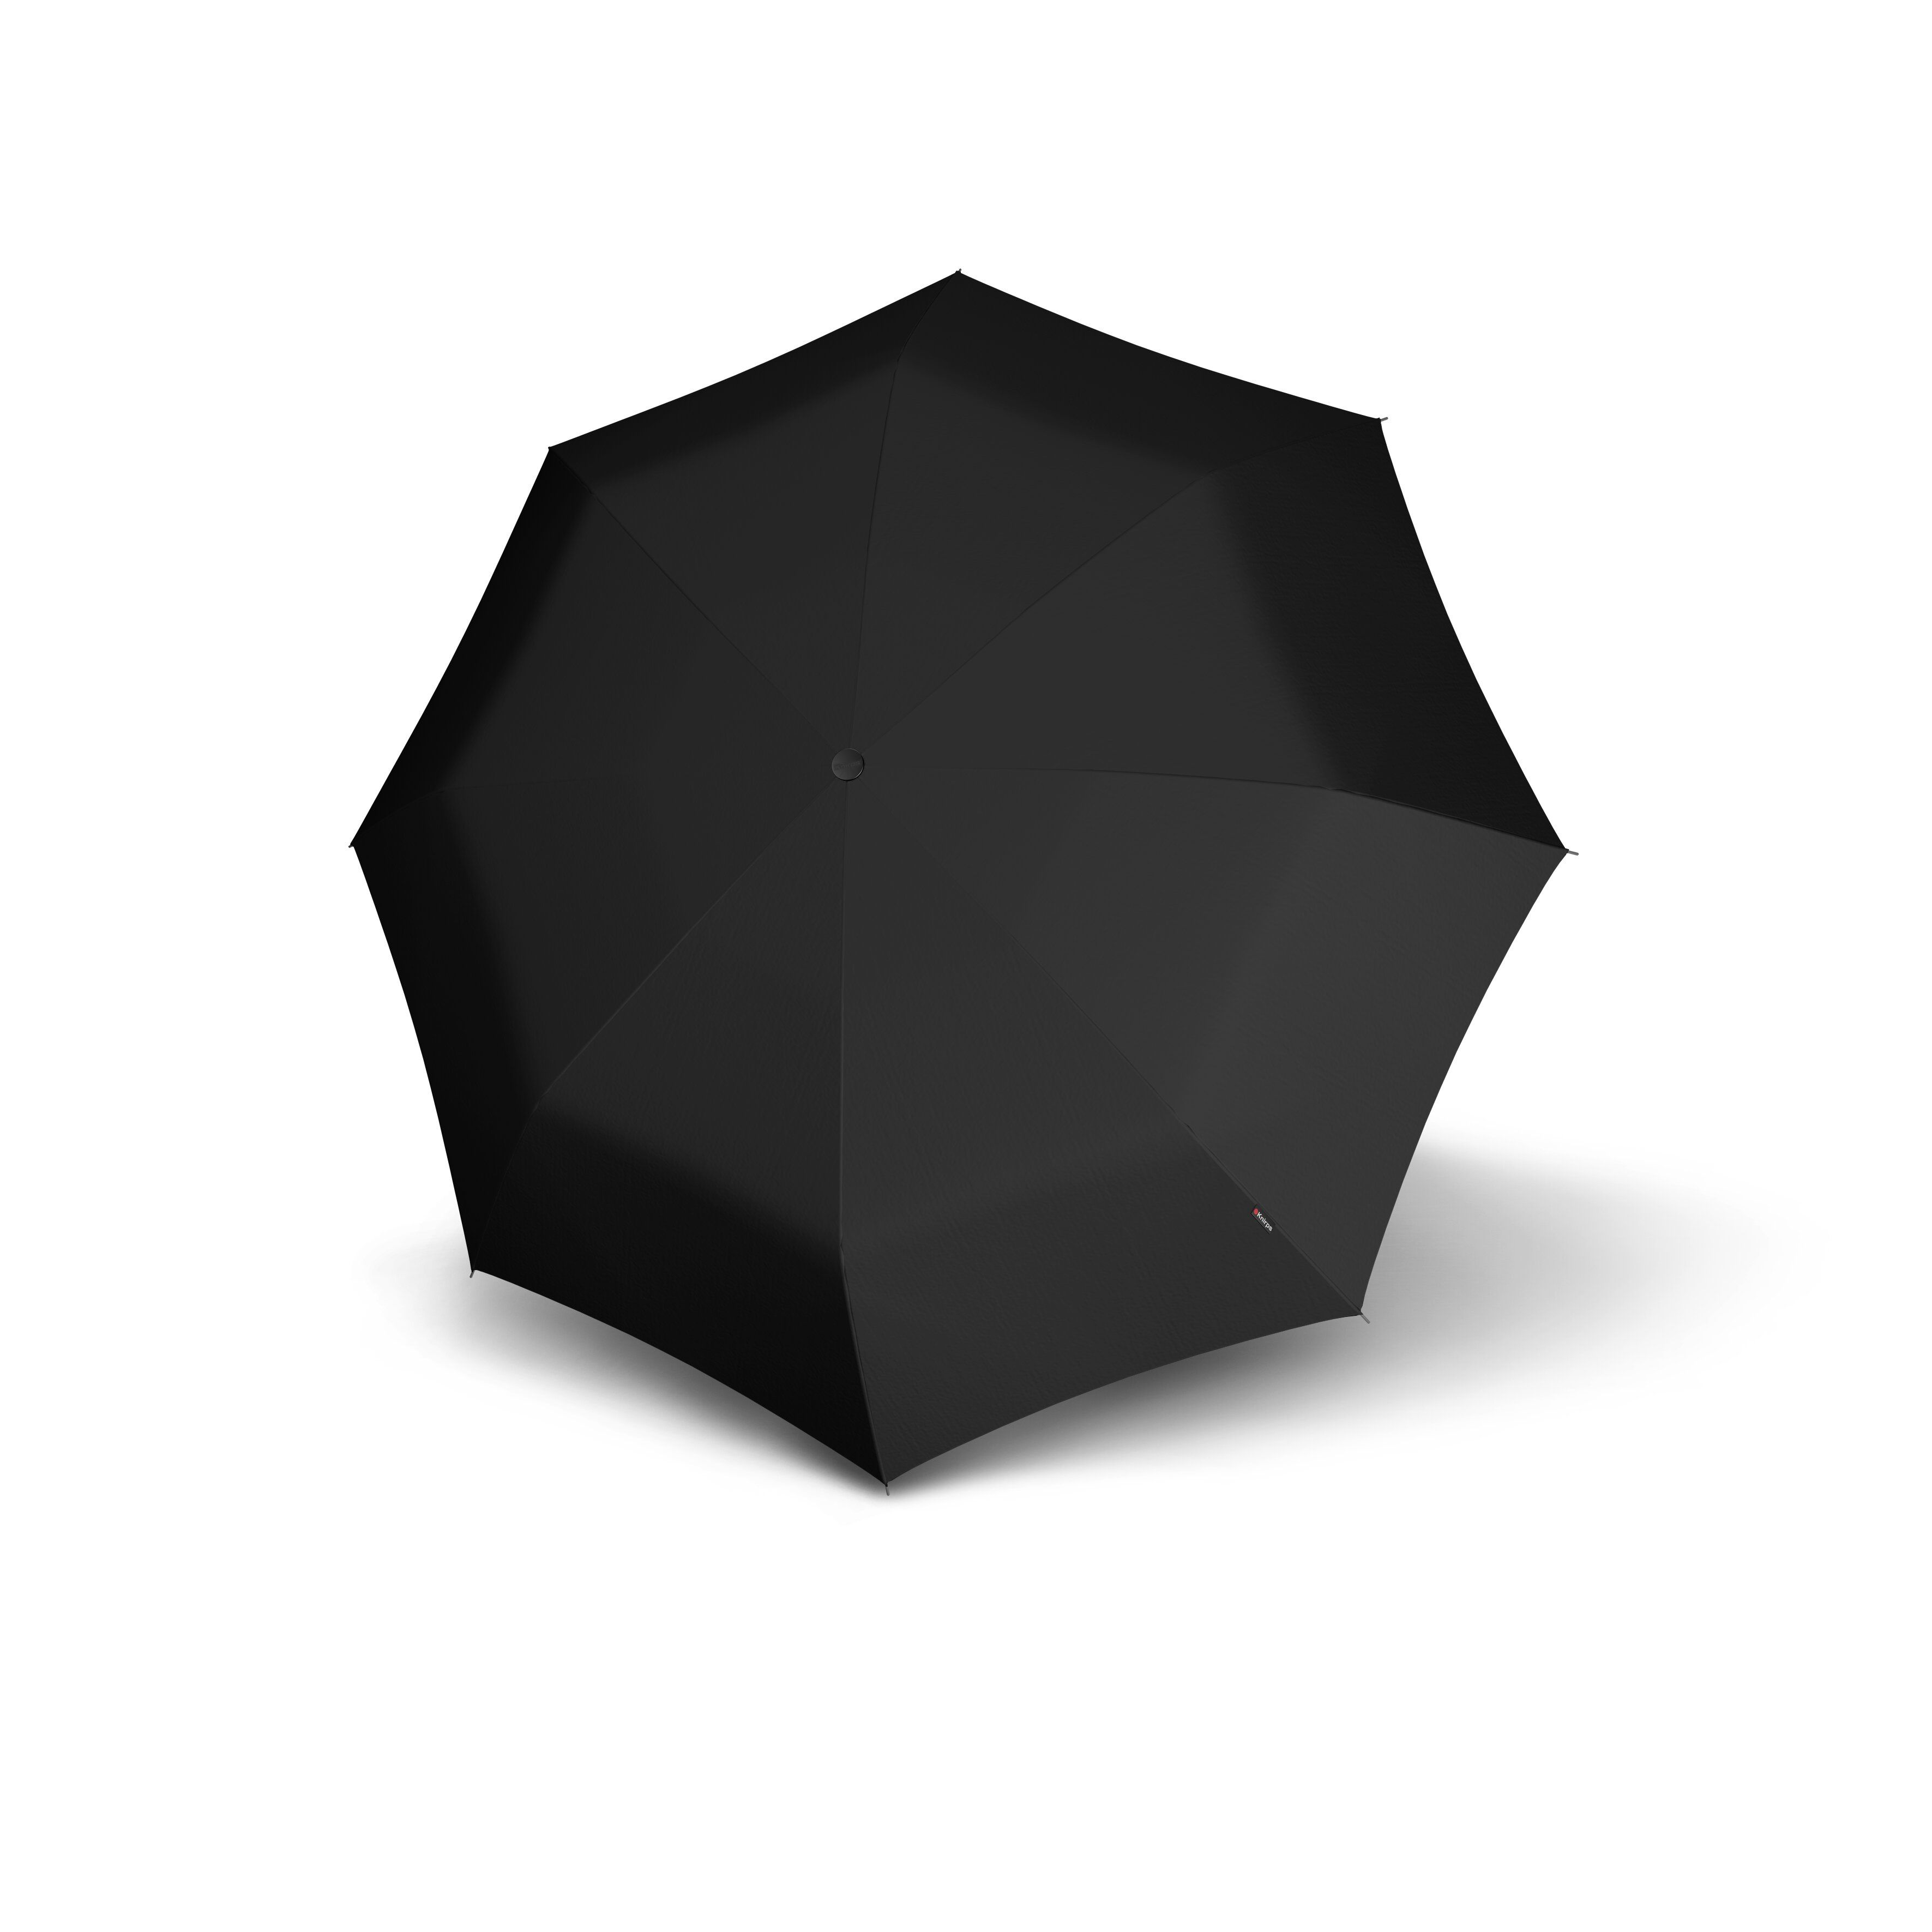 Knirps Umbrella T.903 extra long automatic - photo 2